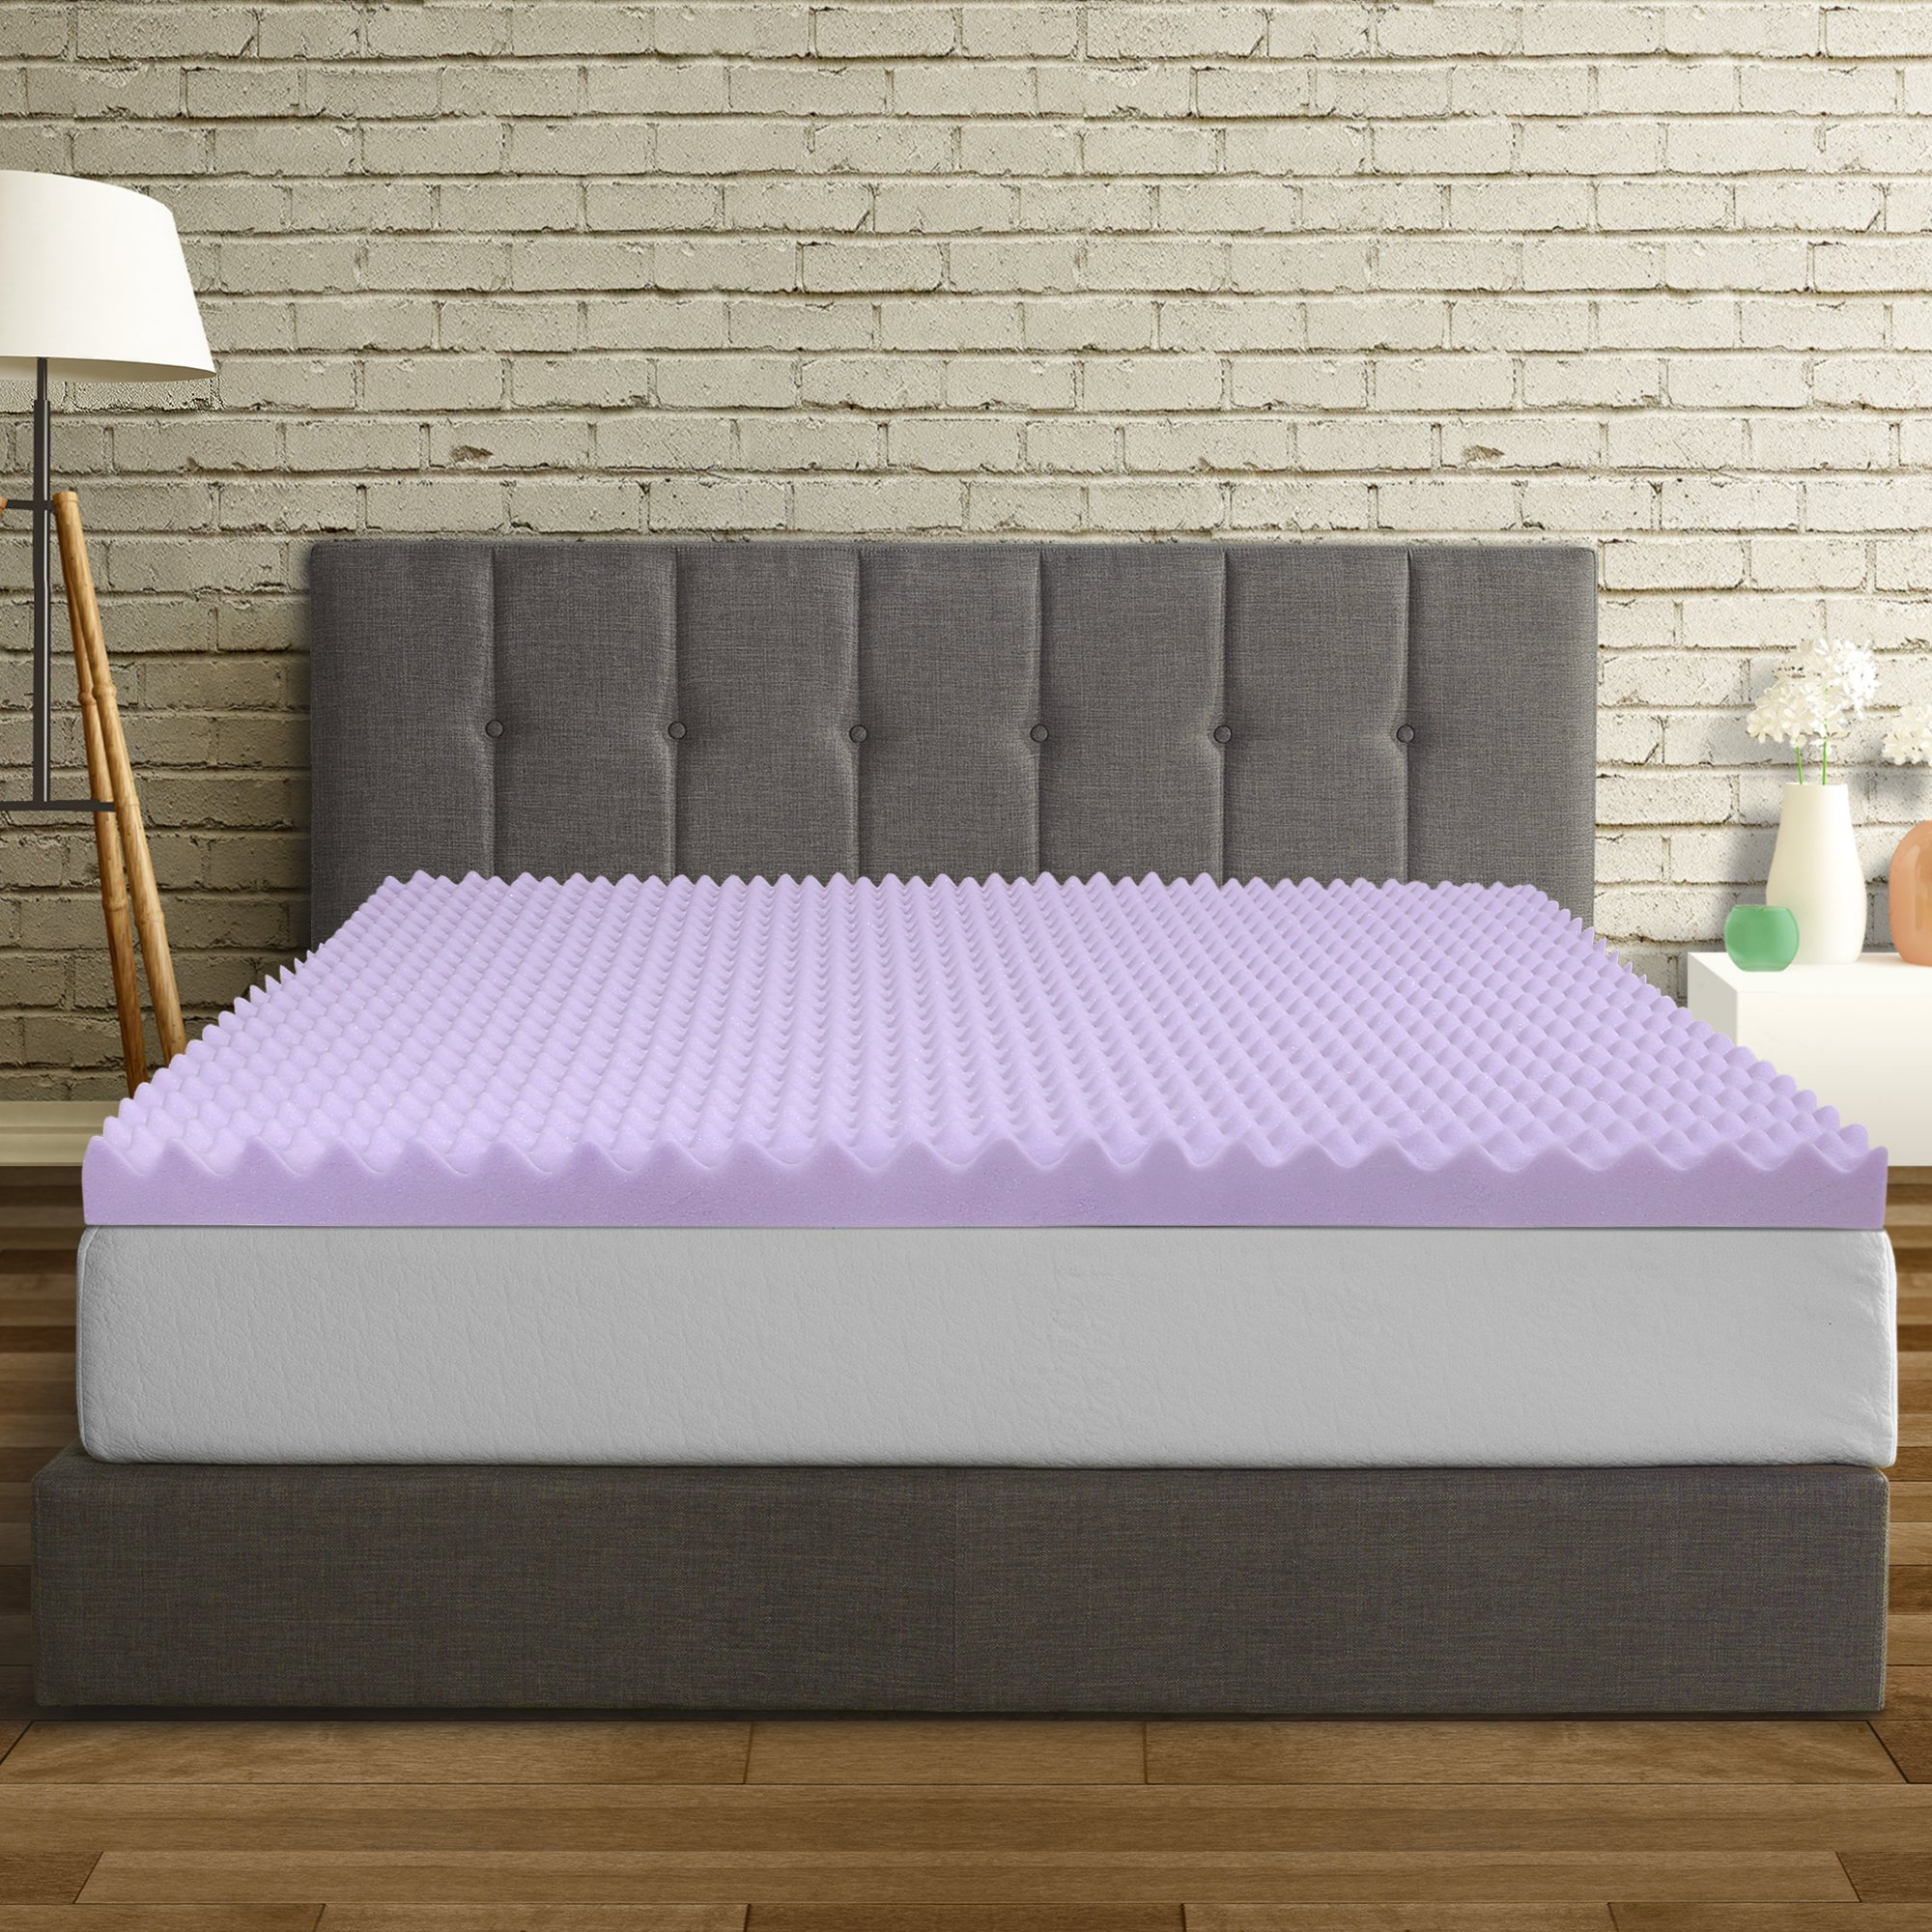 Best Price Mattress Full Mattress Topper - 3 Inch Egg Crate Memory Foam Bed Topper with Lavender Cooling Mattress Pad, Full Size by Best Price Mattress